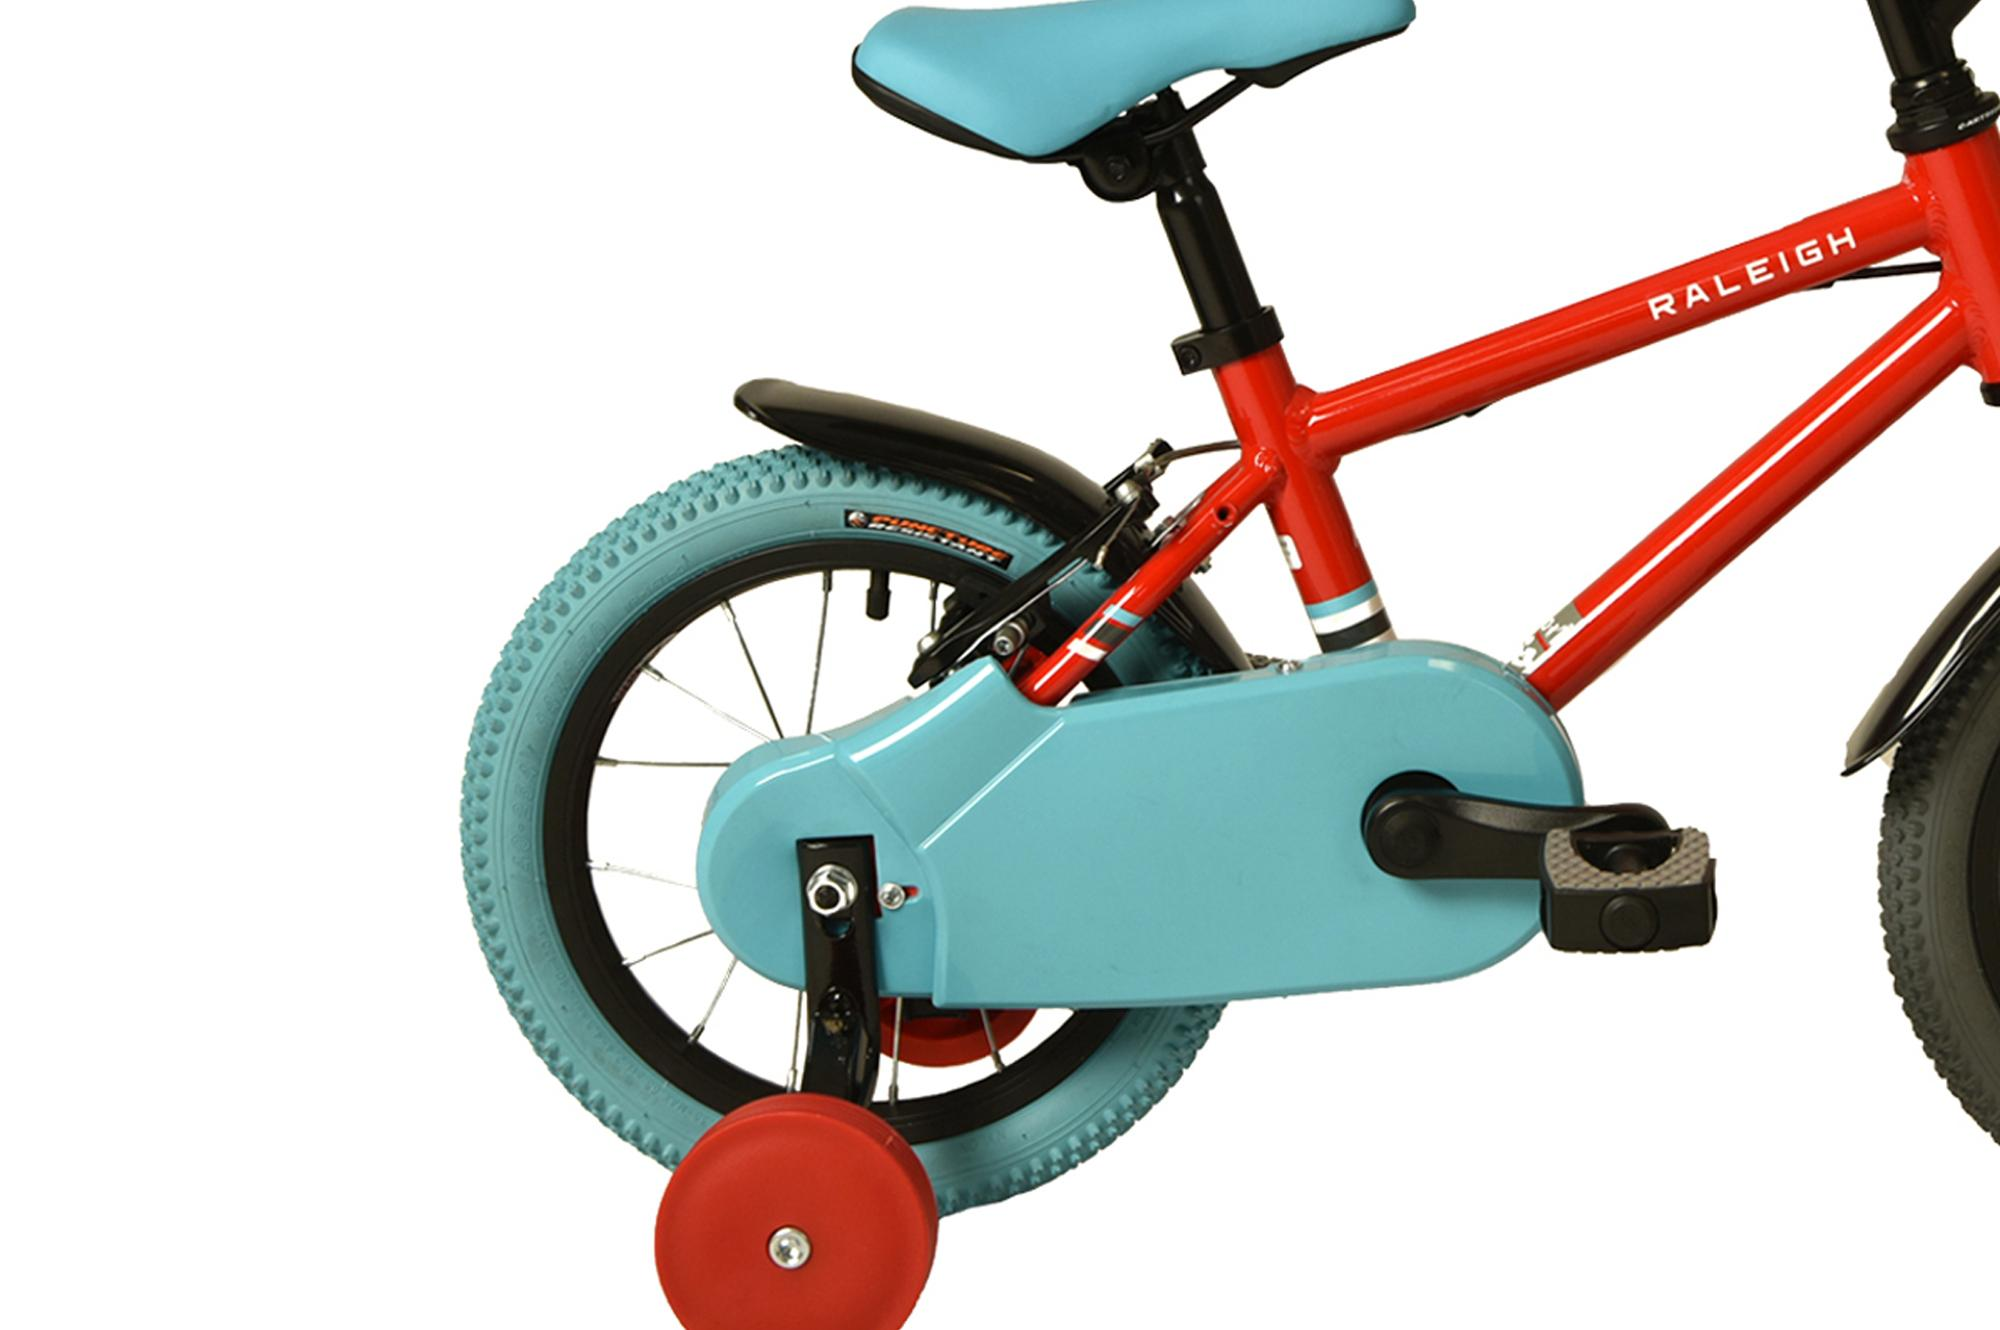 Stabilisers on the Raleigh Pop 14 inch kids bike